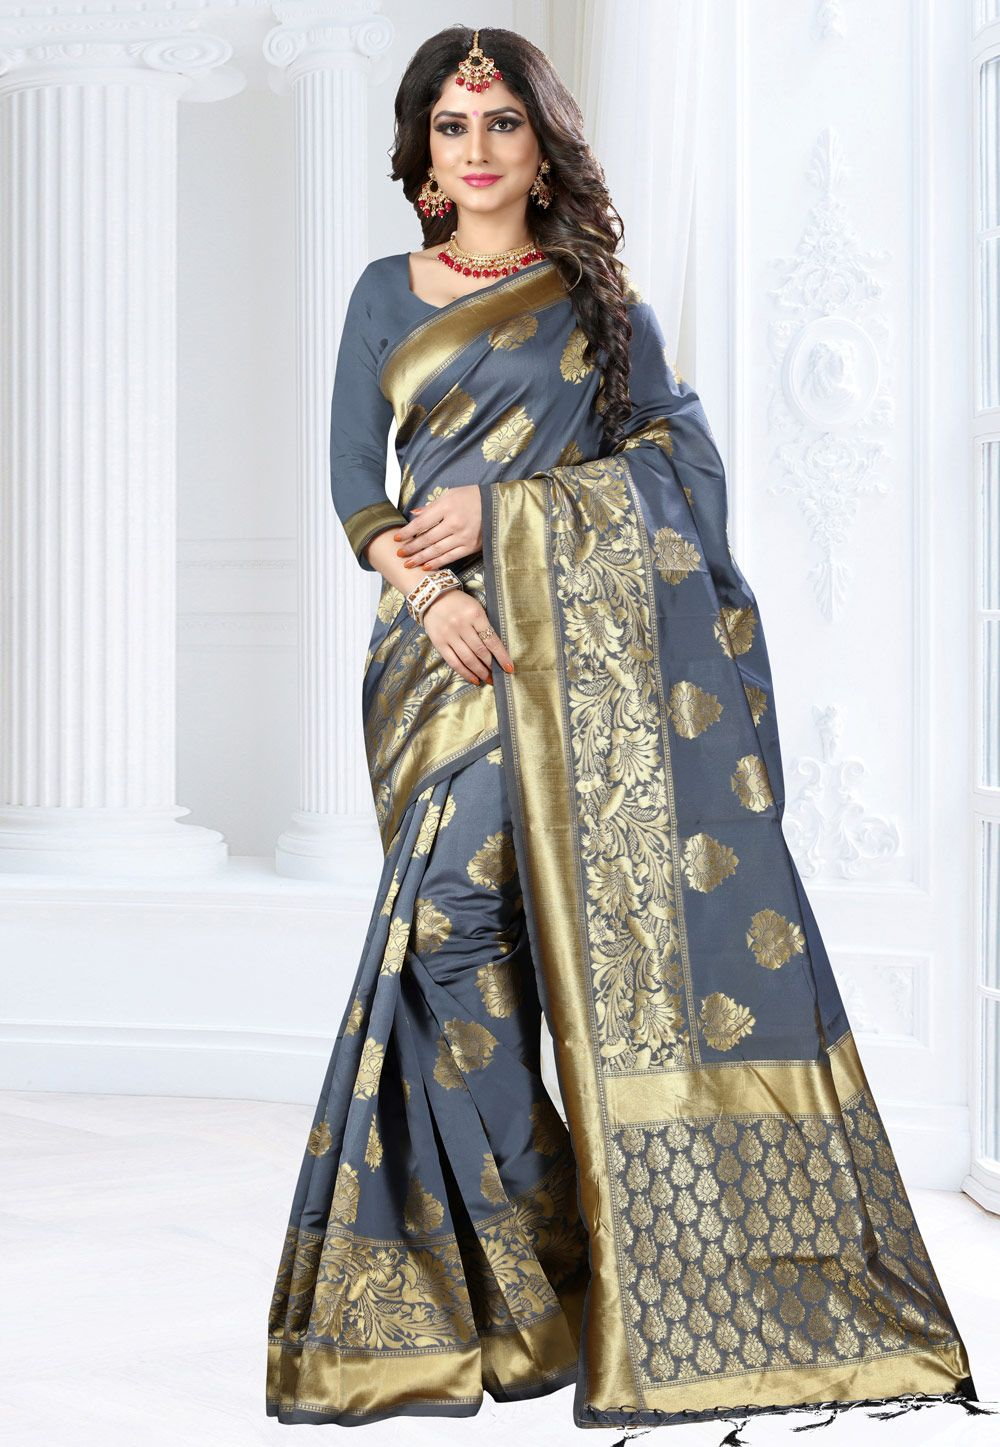 0d01e6d181 Buy Gray Banarasi Silk Festival Wear Saree 155345 with blouse online at  lowest price from vast collection of sarees at Indianclothstore.com.